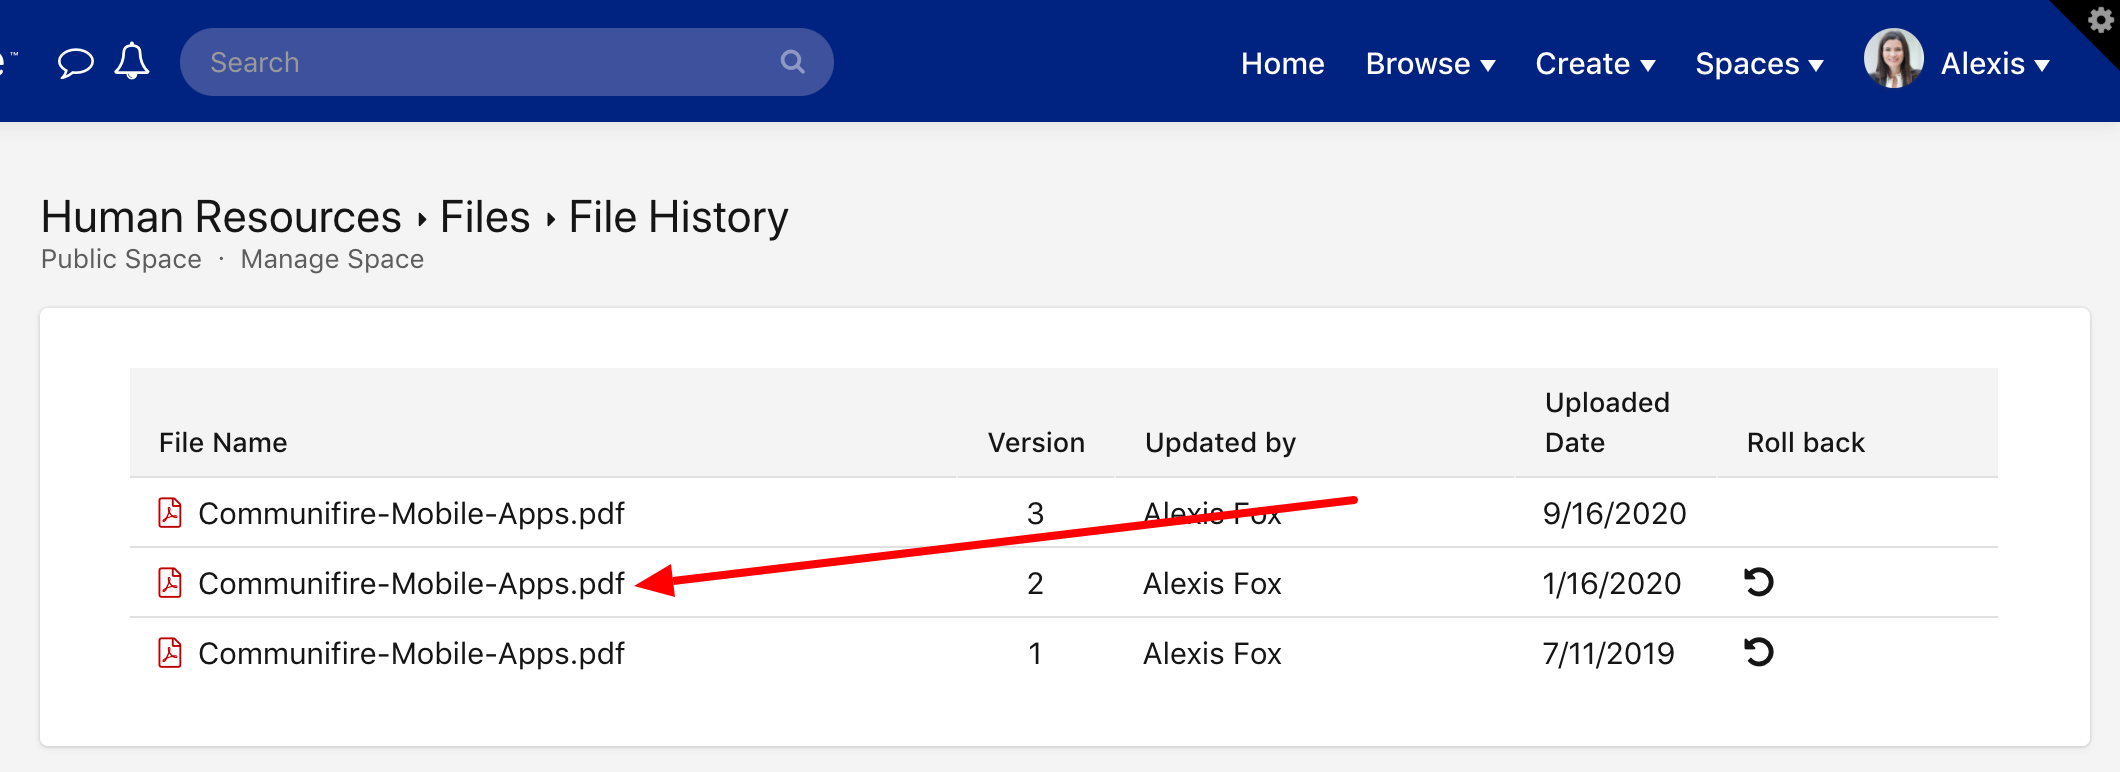 Click a file title to view that version